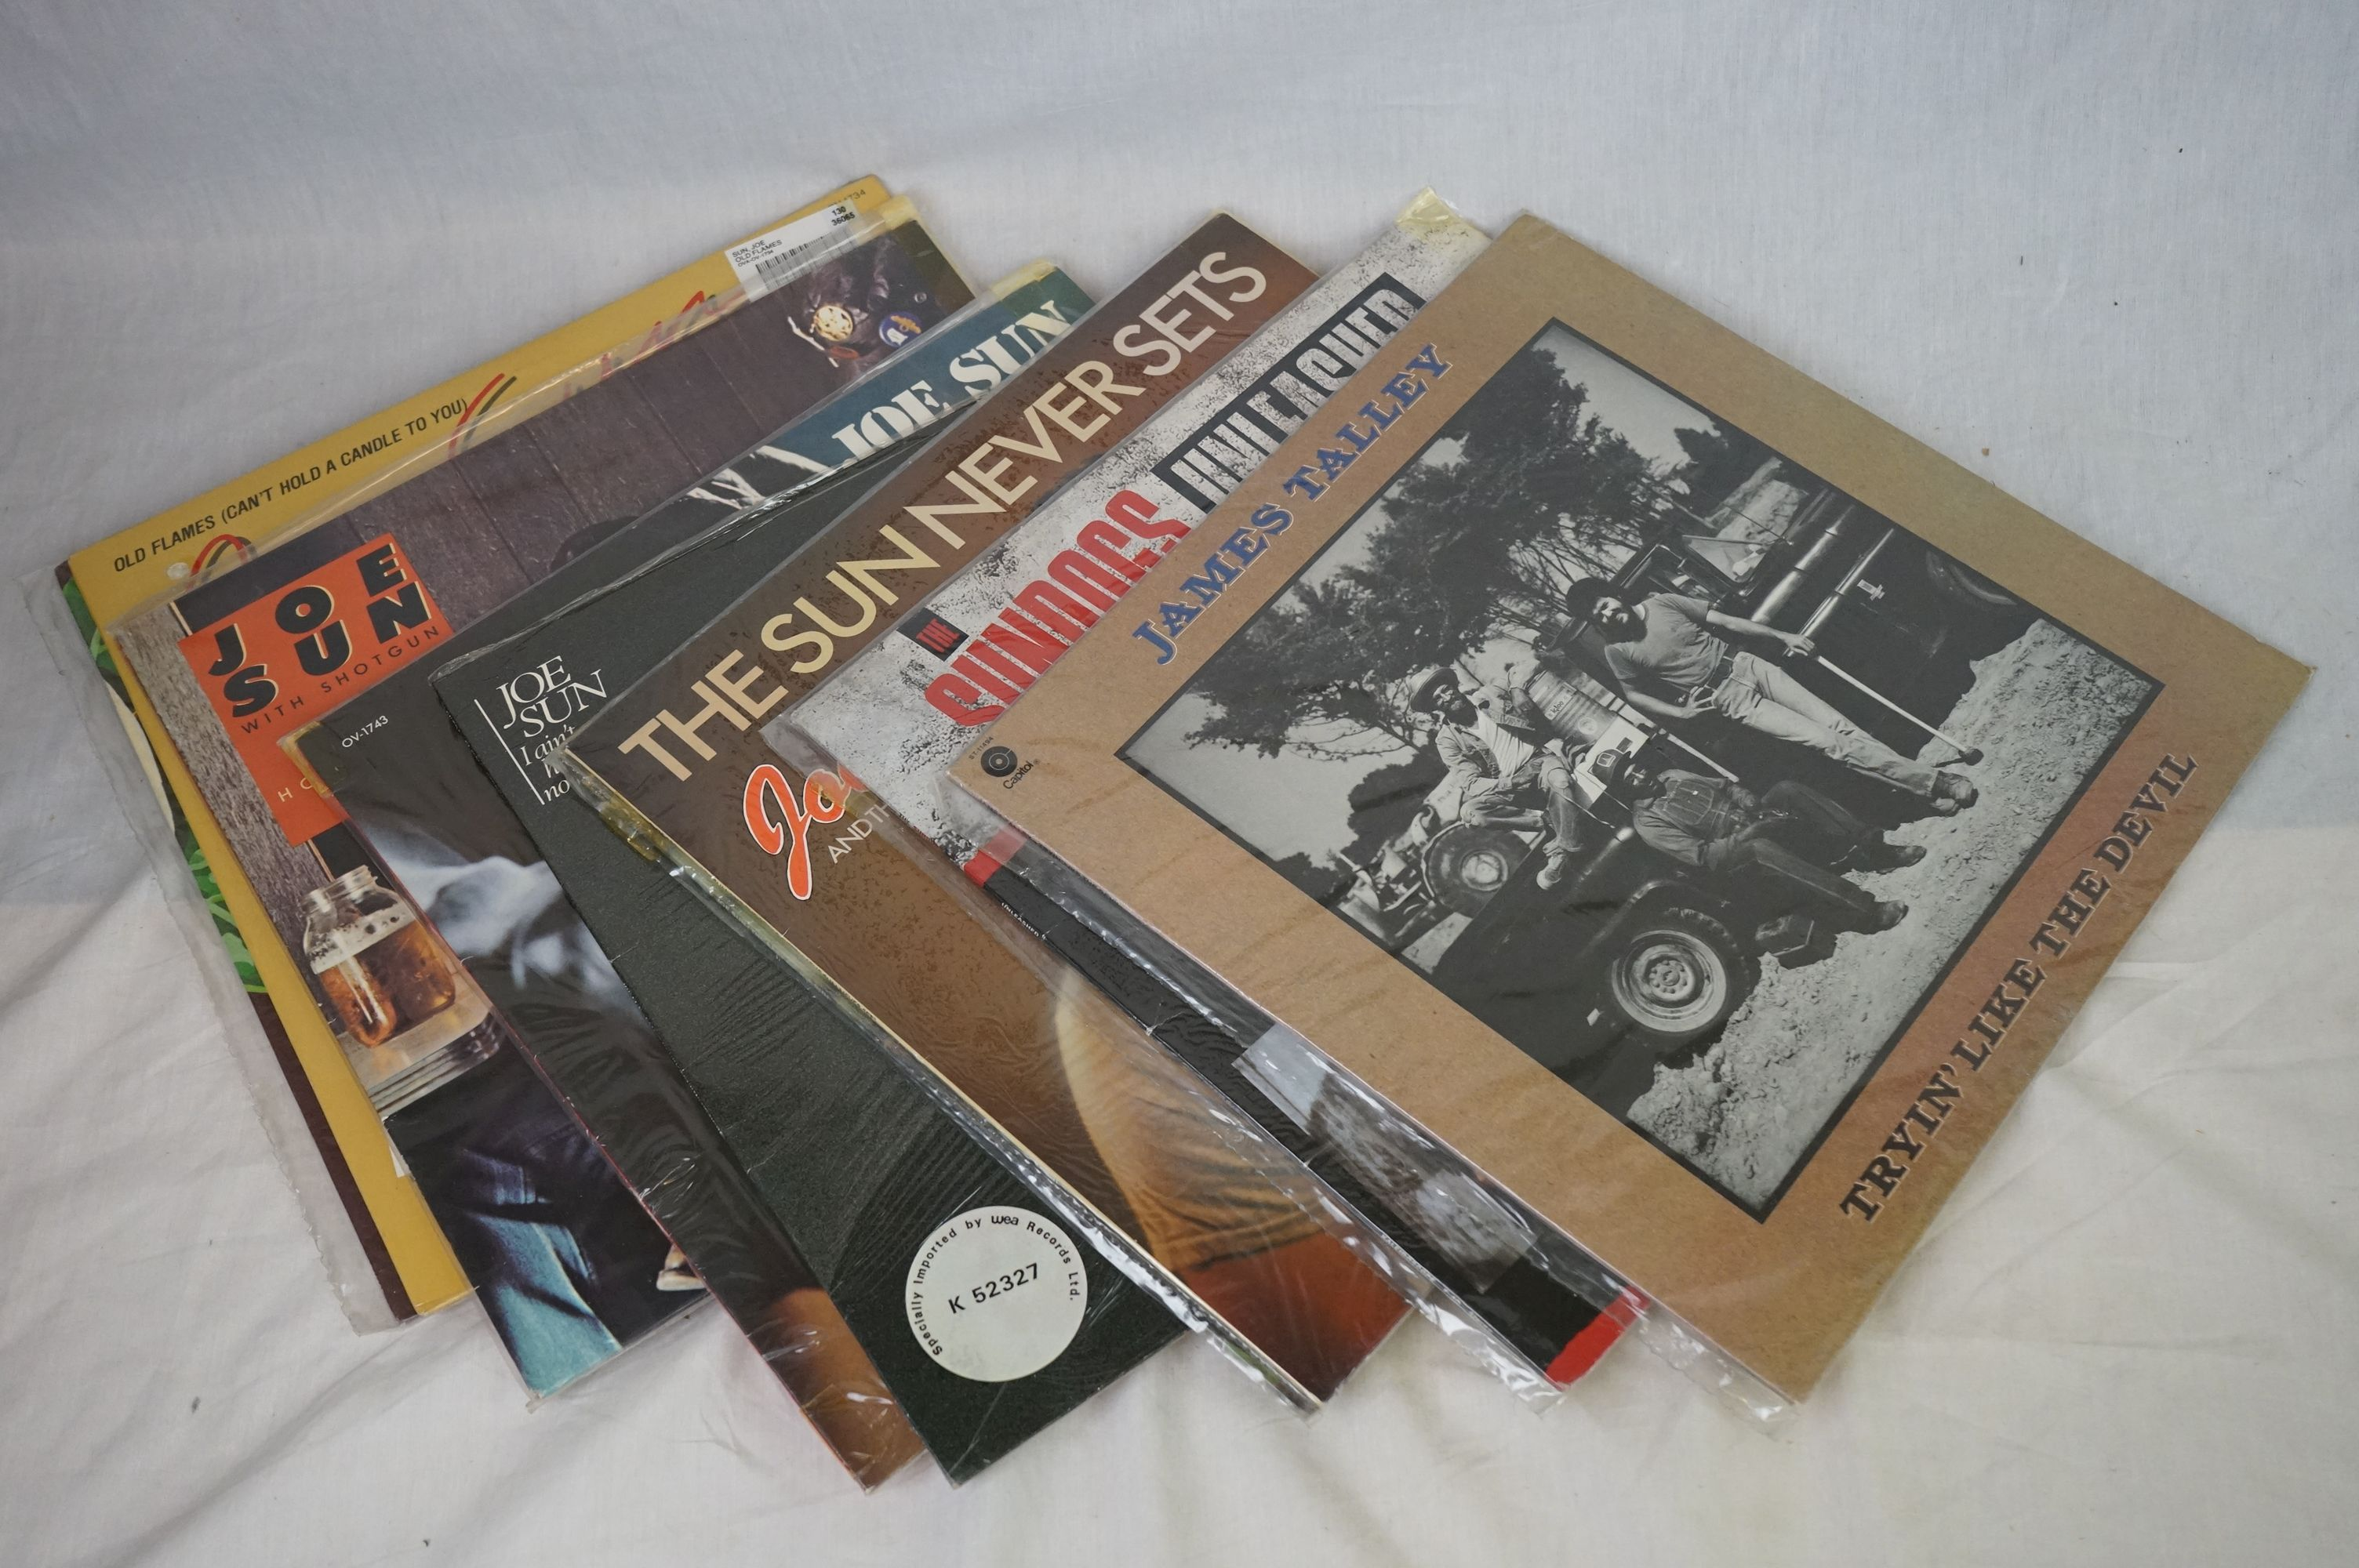 Vinyl - Around 200 LPs to include Country, Rock n Roll, Rockabilly, Compilations etc, sleeves and - Image 2 of 3